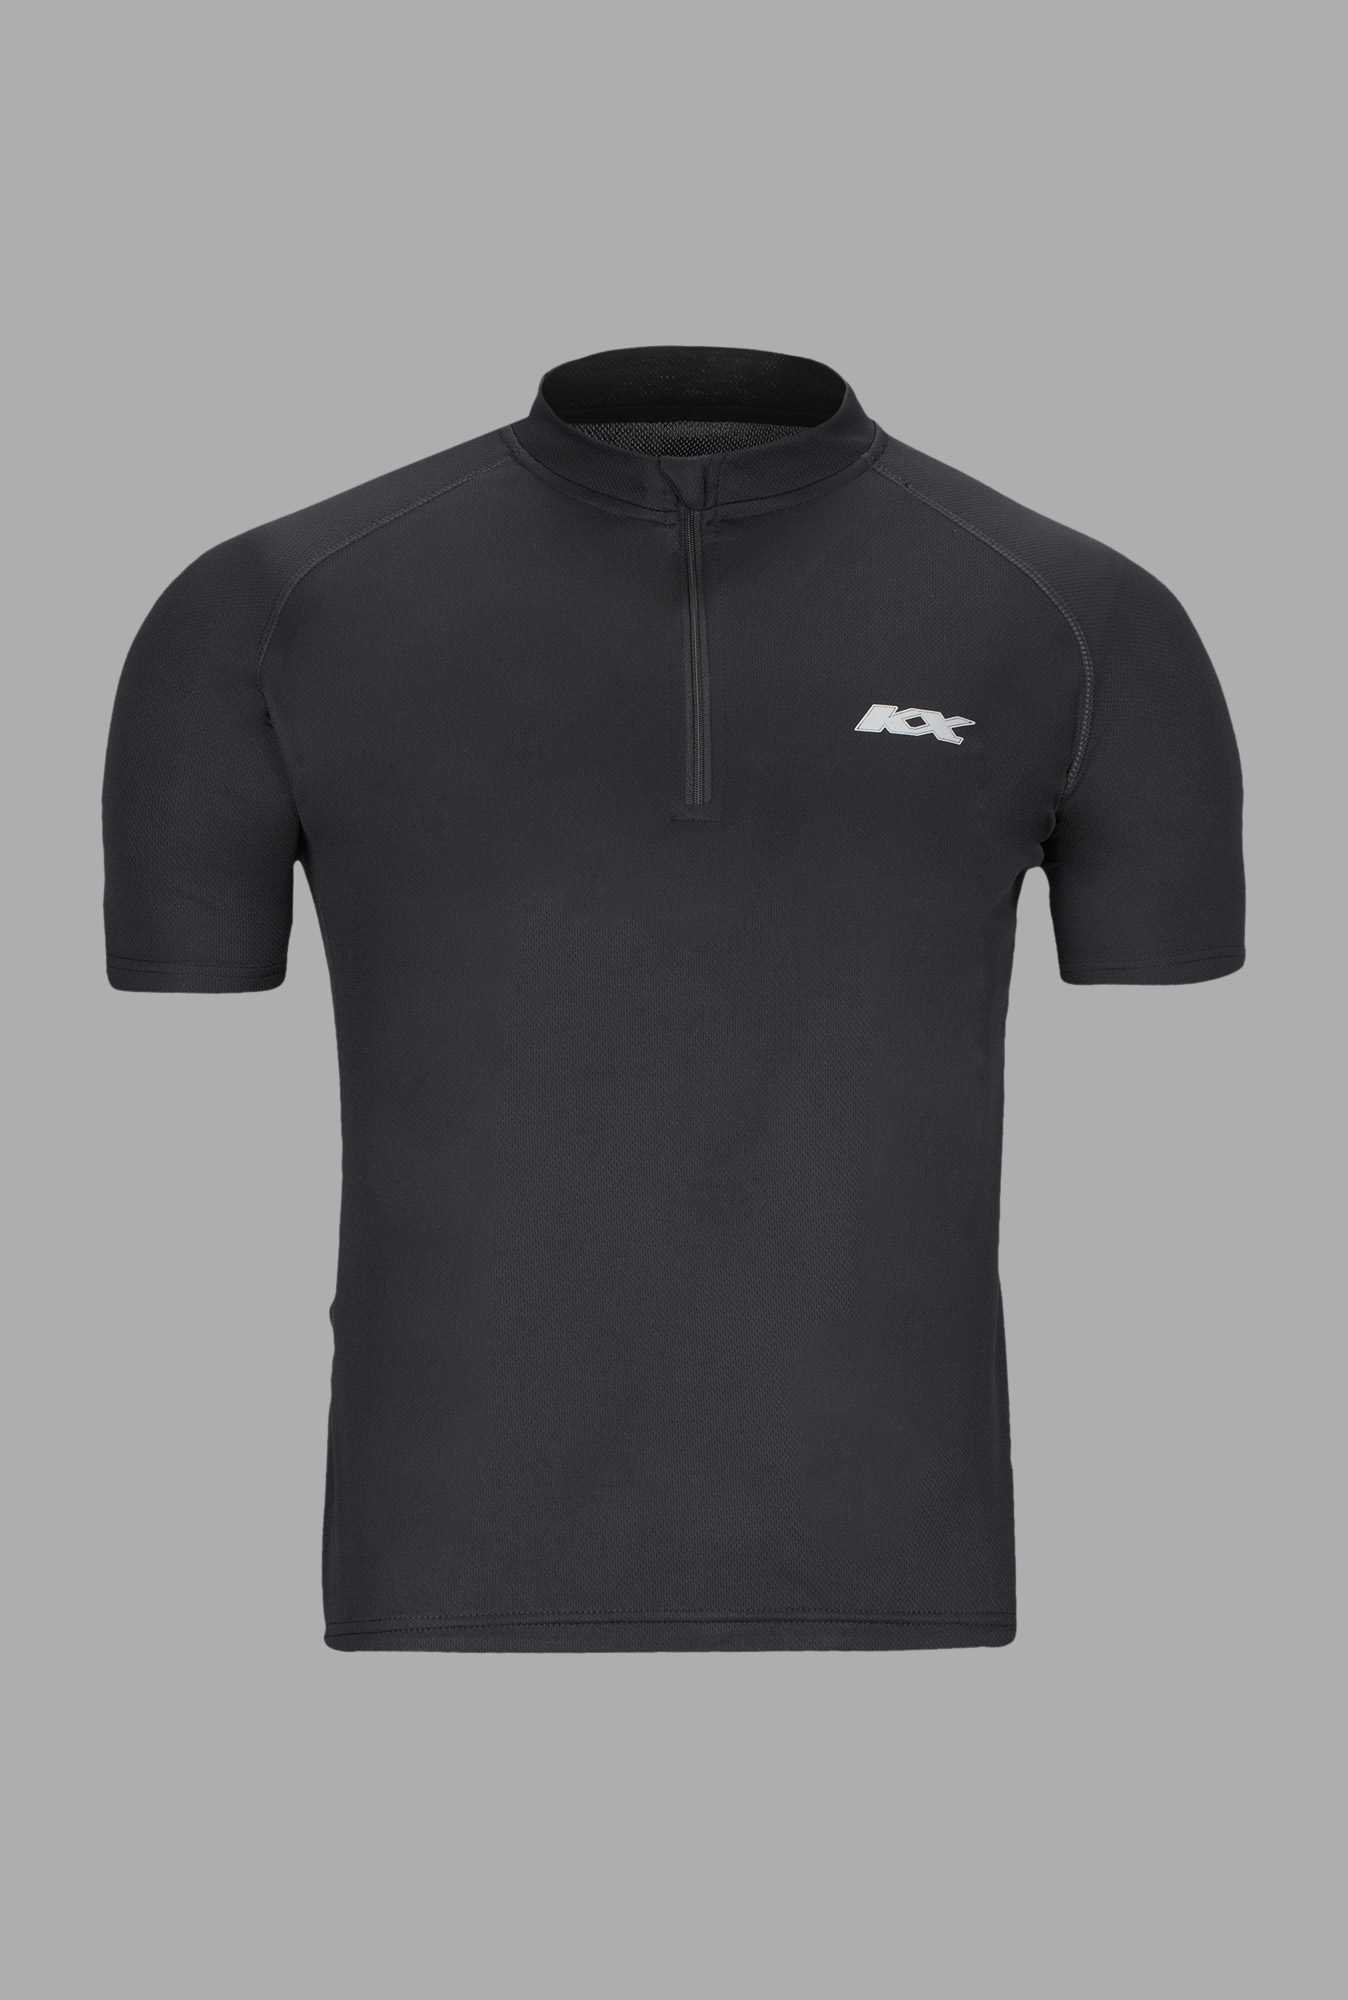 KX Black Cycling T Shirt